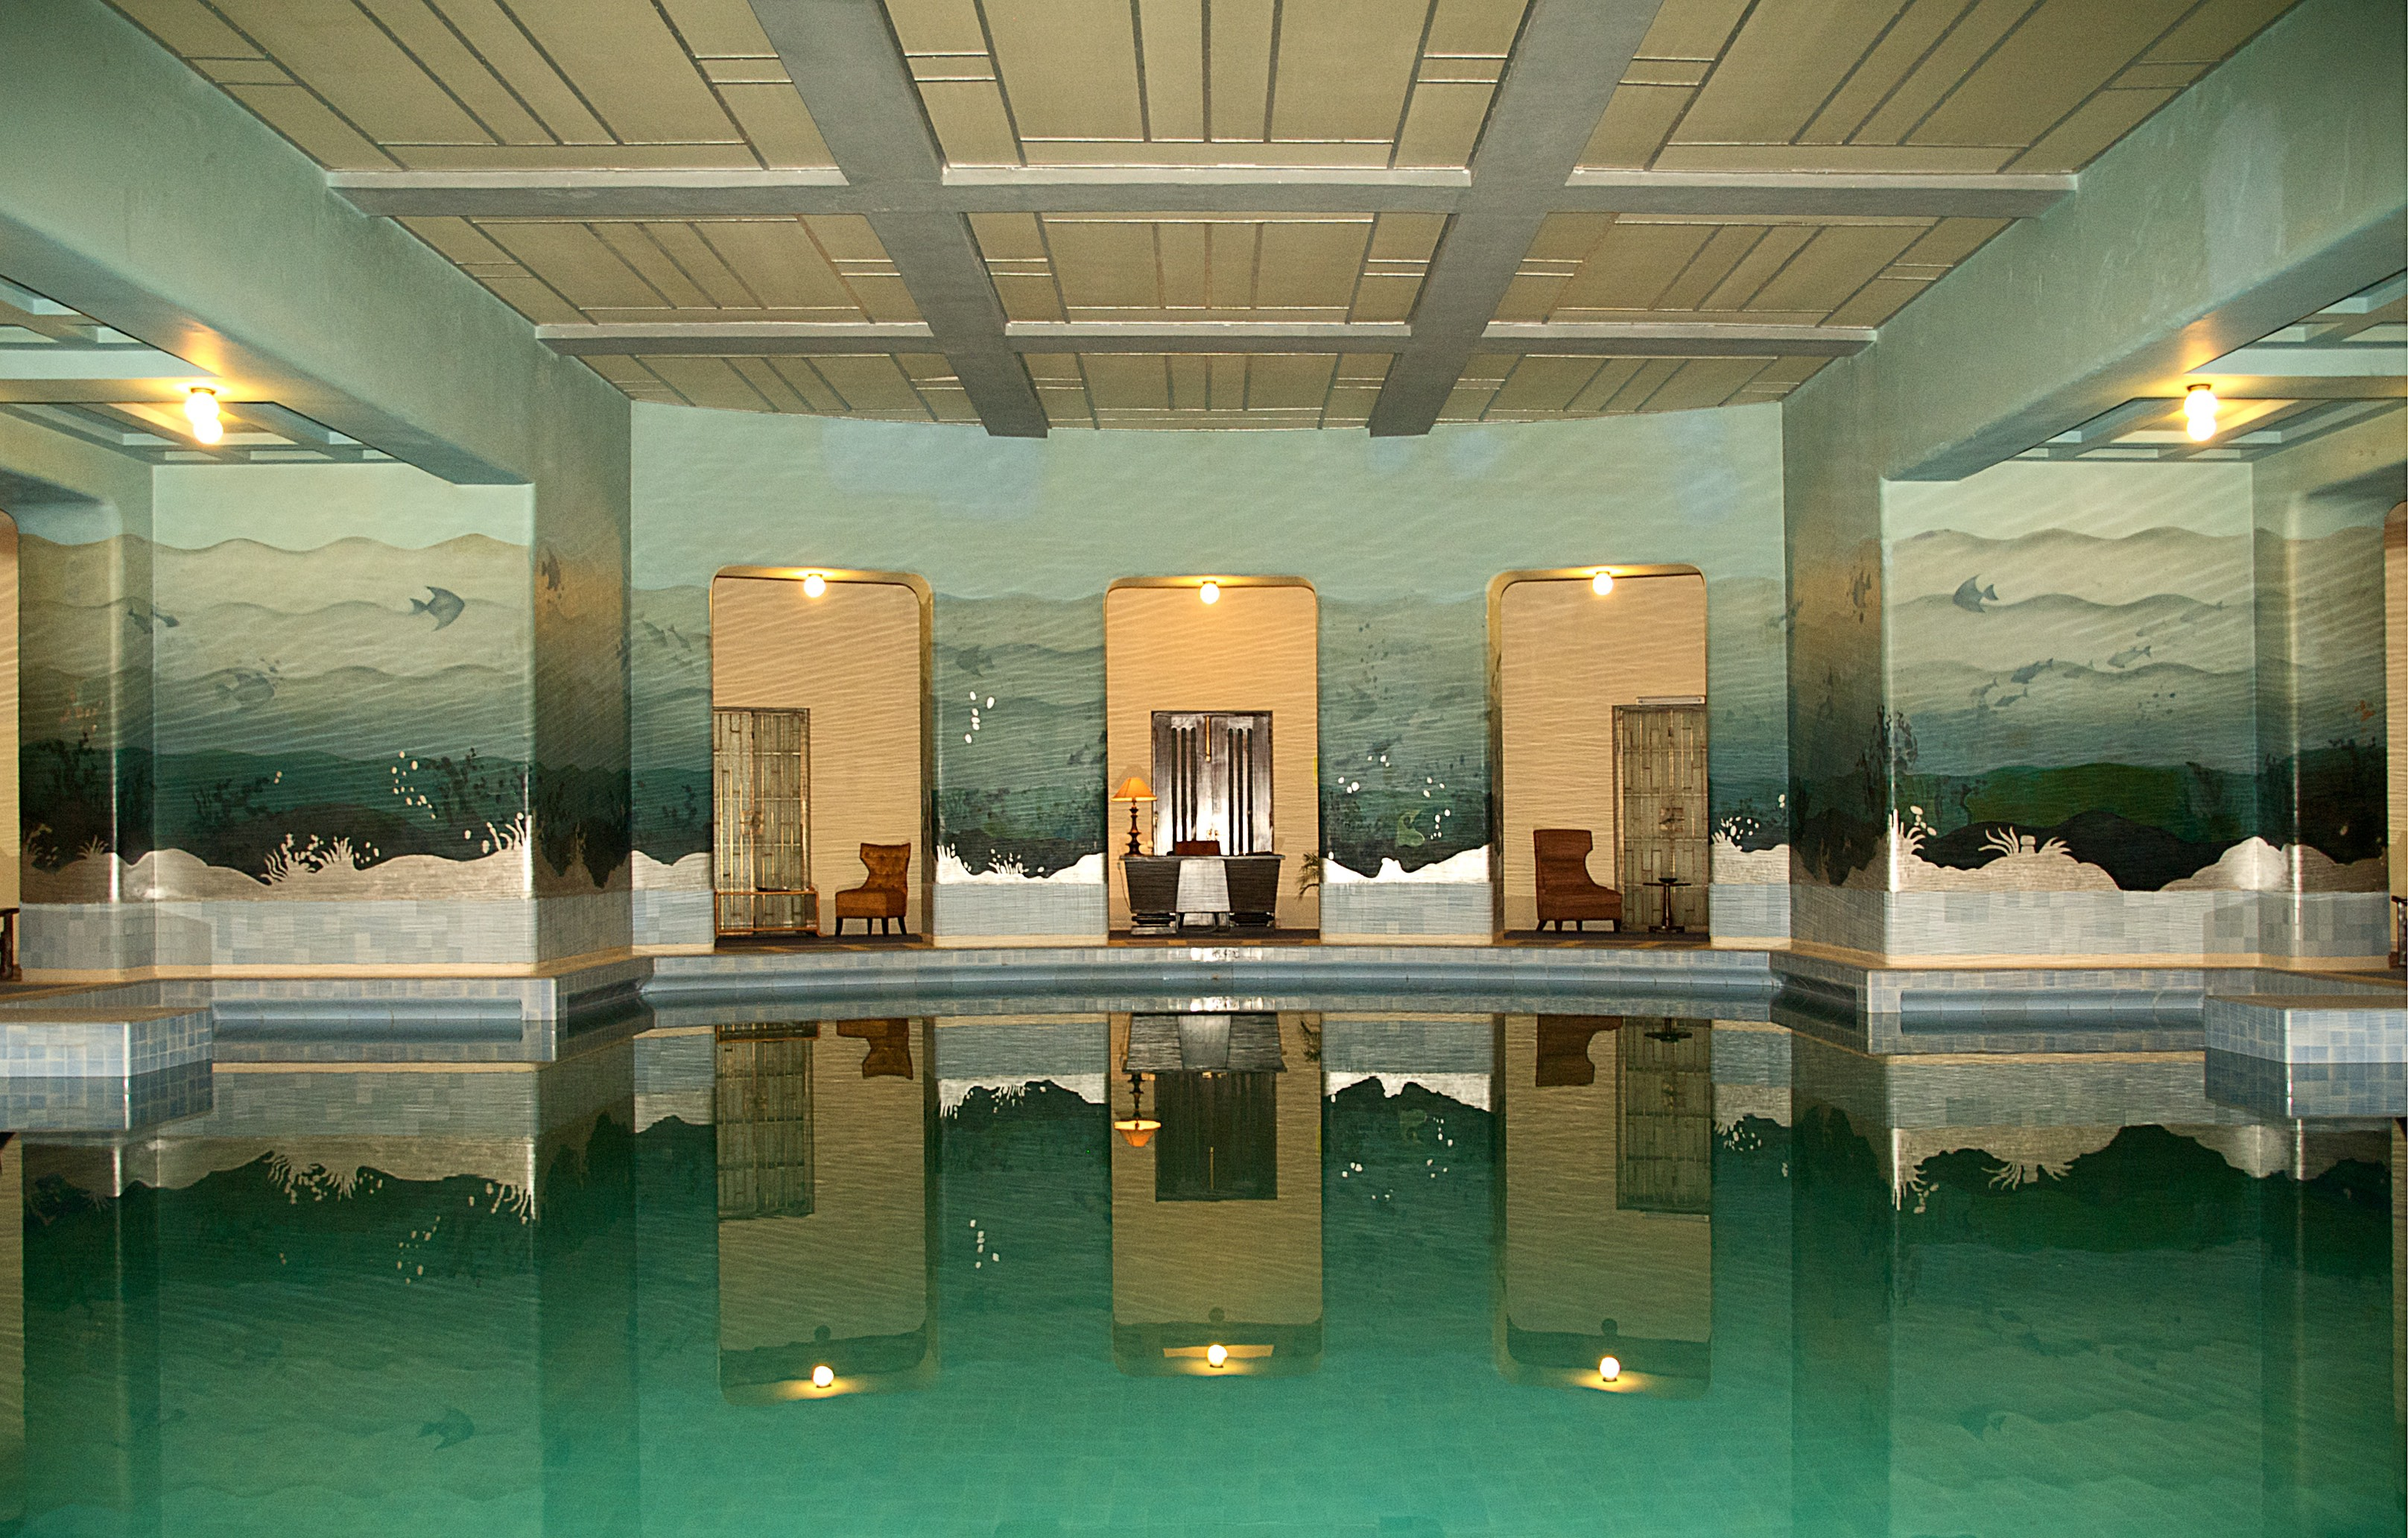 5 Things to Consider When Building an Indoor Swimming Pool